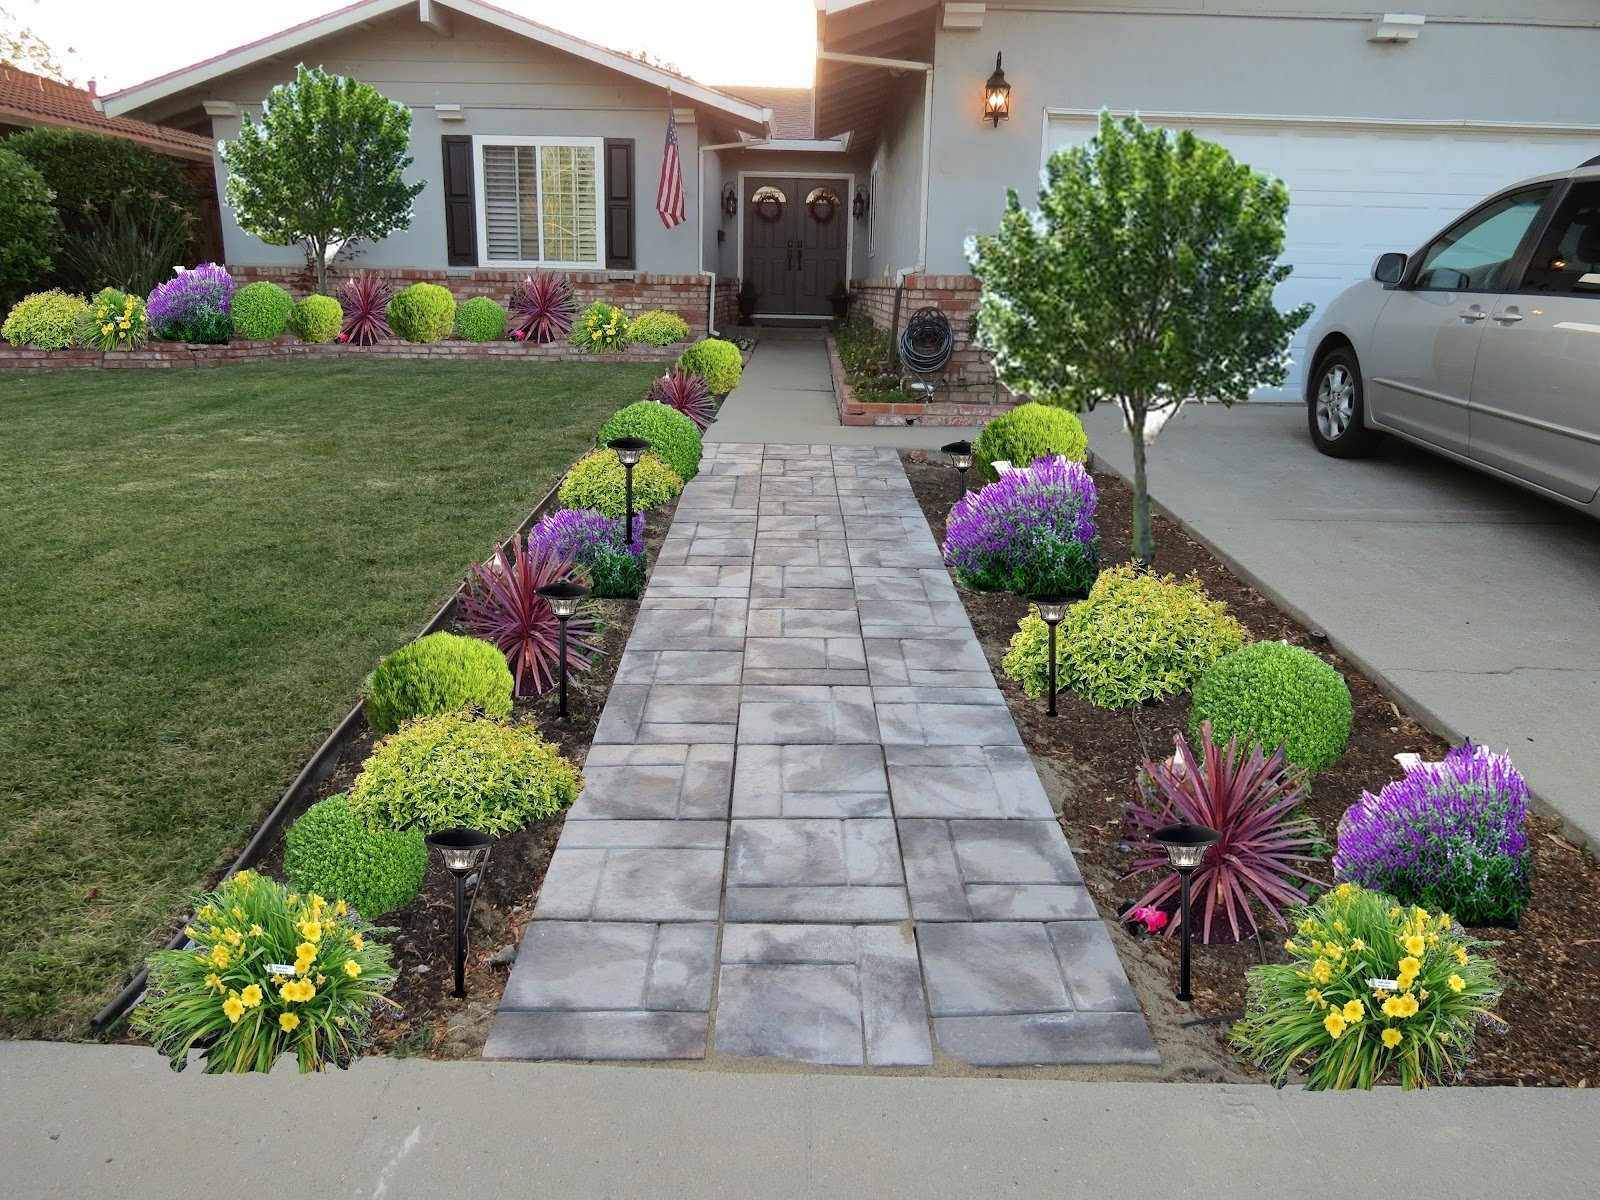 10 Spectacular Cheap Landscaping Ideas For Front Yard best front sidewalk landscaping ideas manitoba design 2020